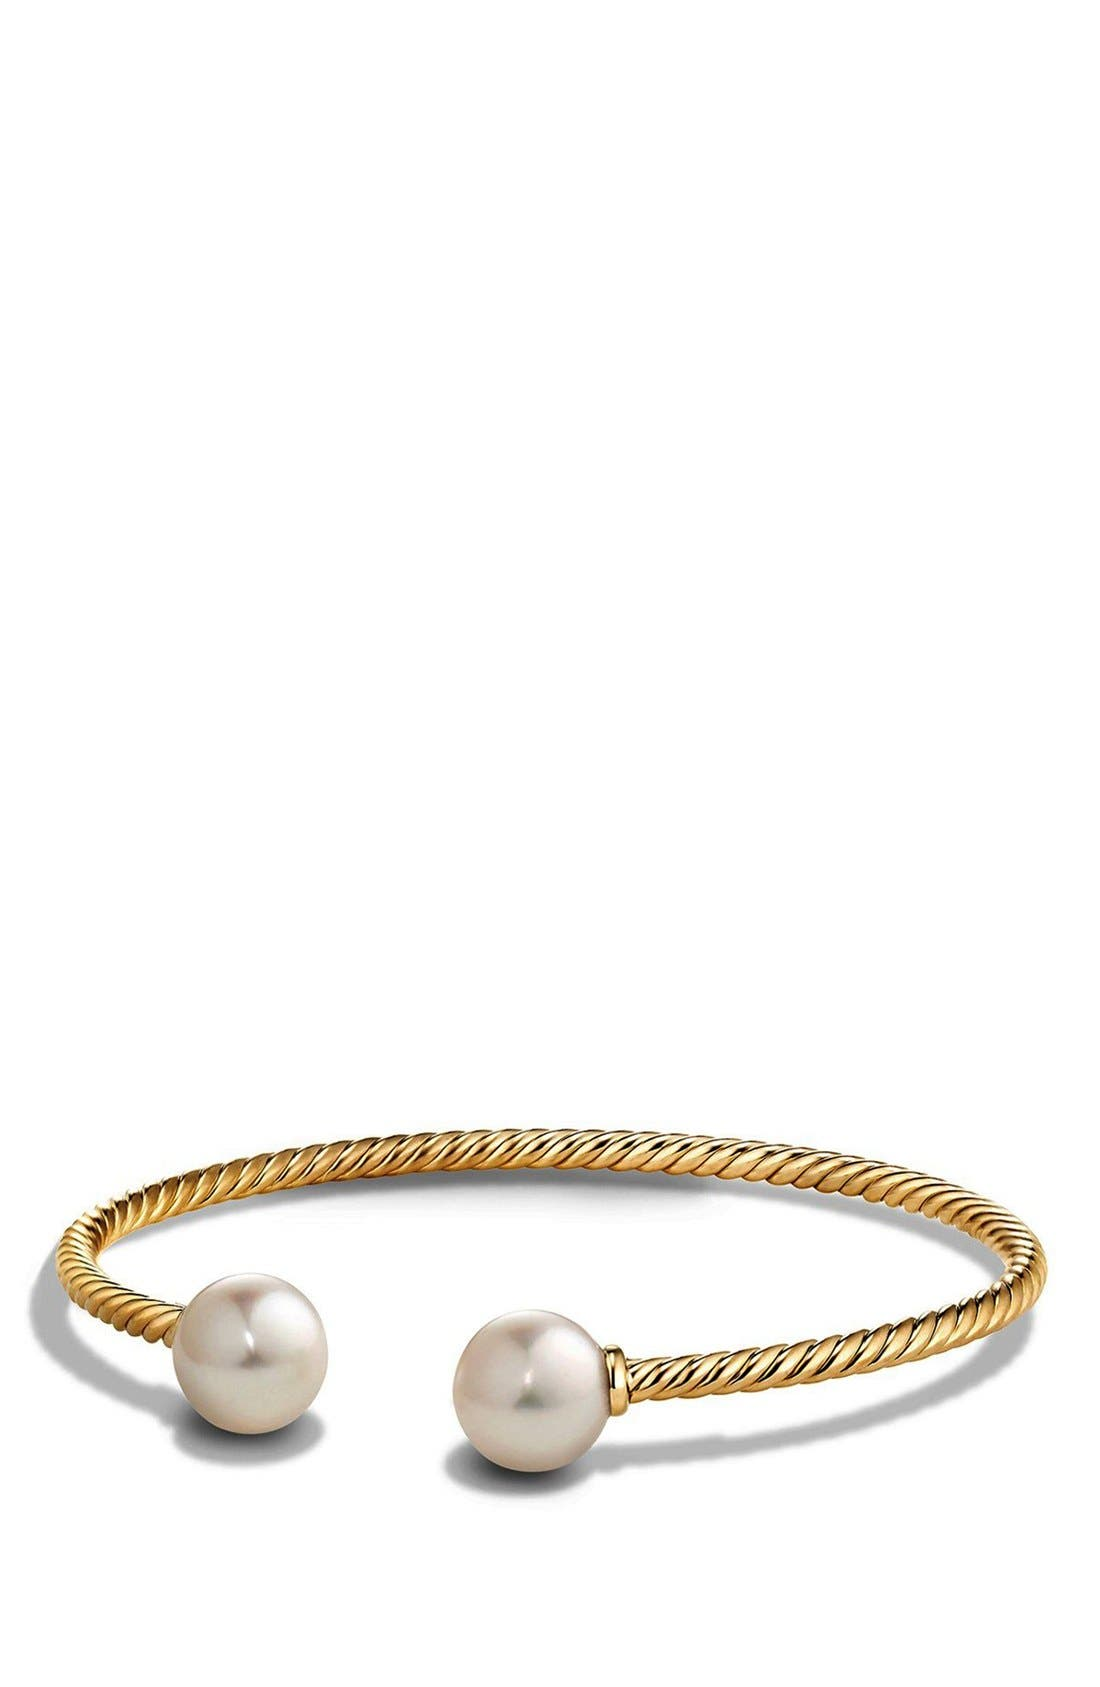 David Yurman 'Solari' Bead Bracelet